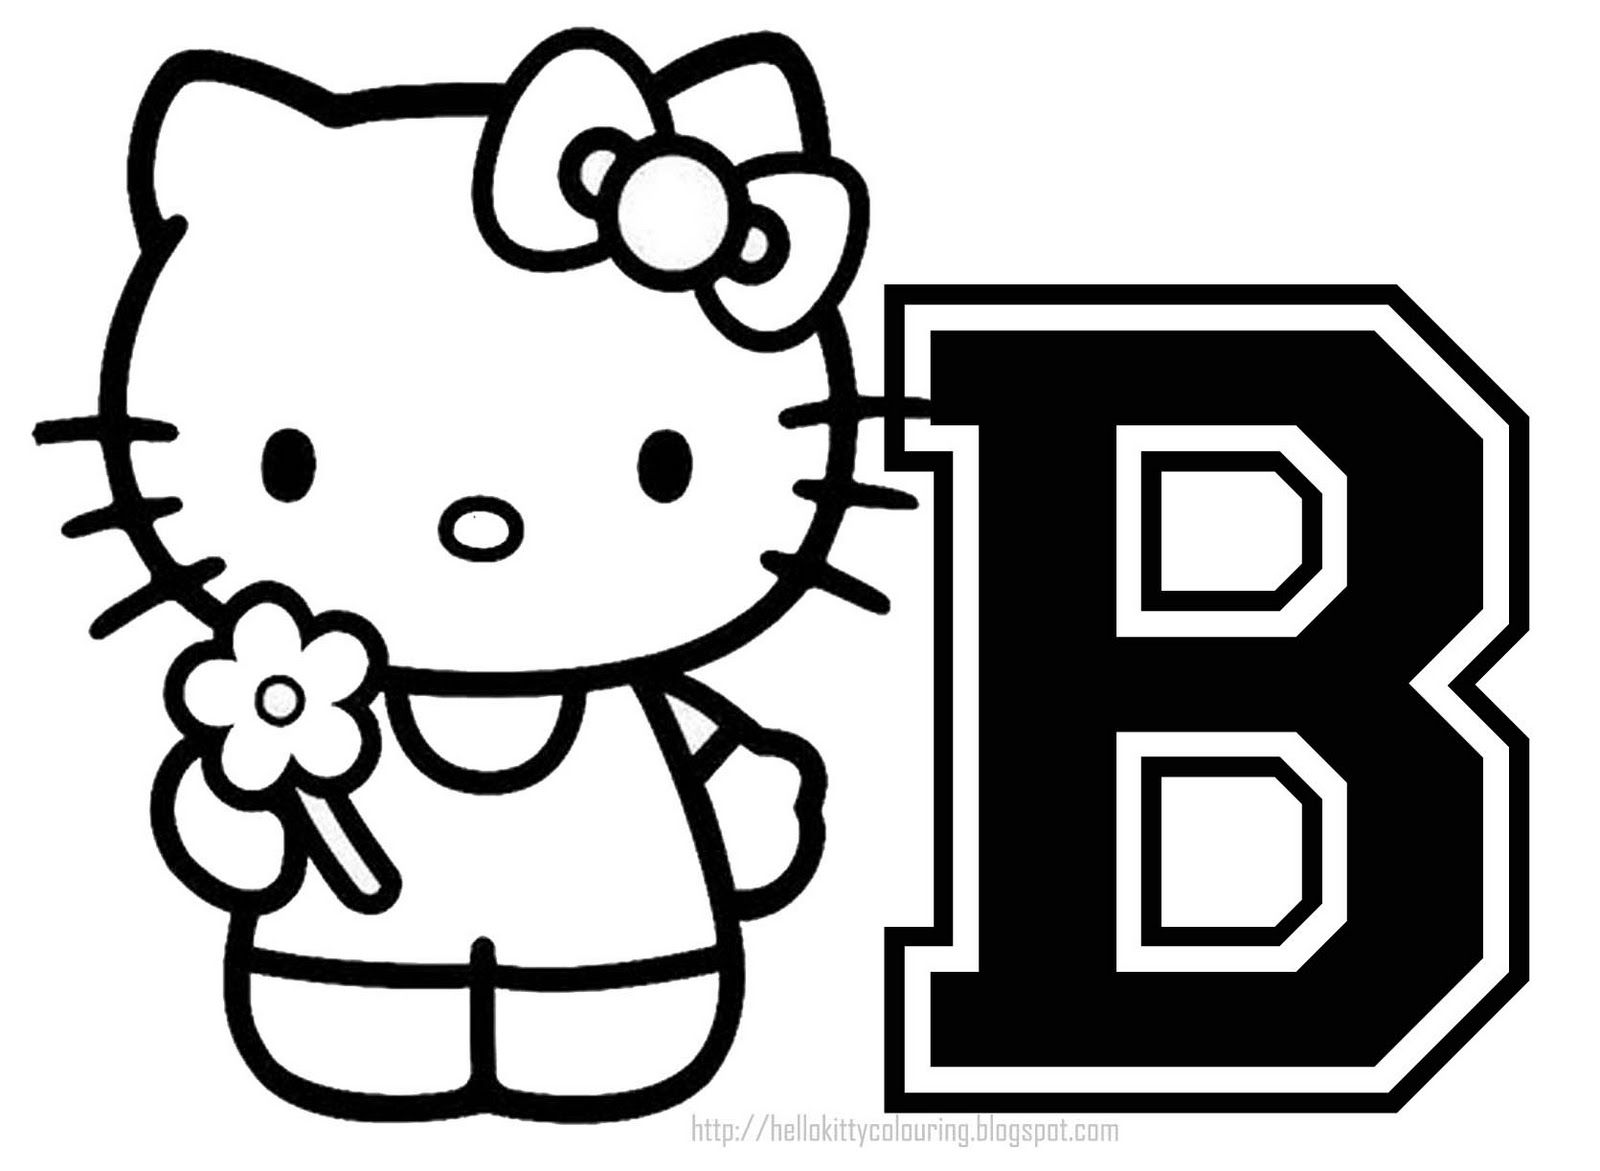 Coloring pages printable letter m - Free Printable Hello Kitty Coloring Pages Party Invitations Activity Sheets And Paper Crafts For Hello Kitty Fans The World Over